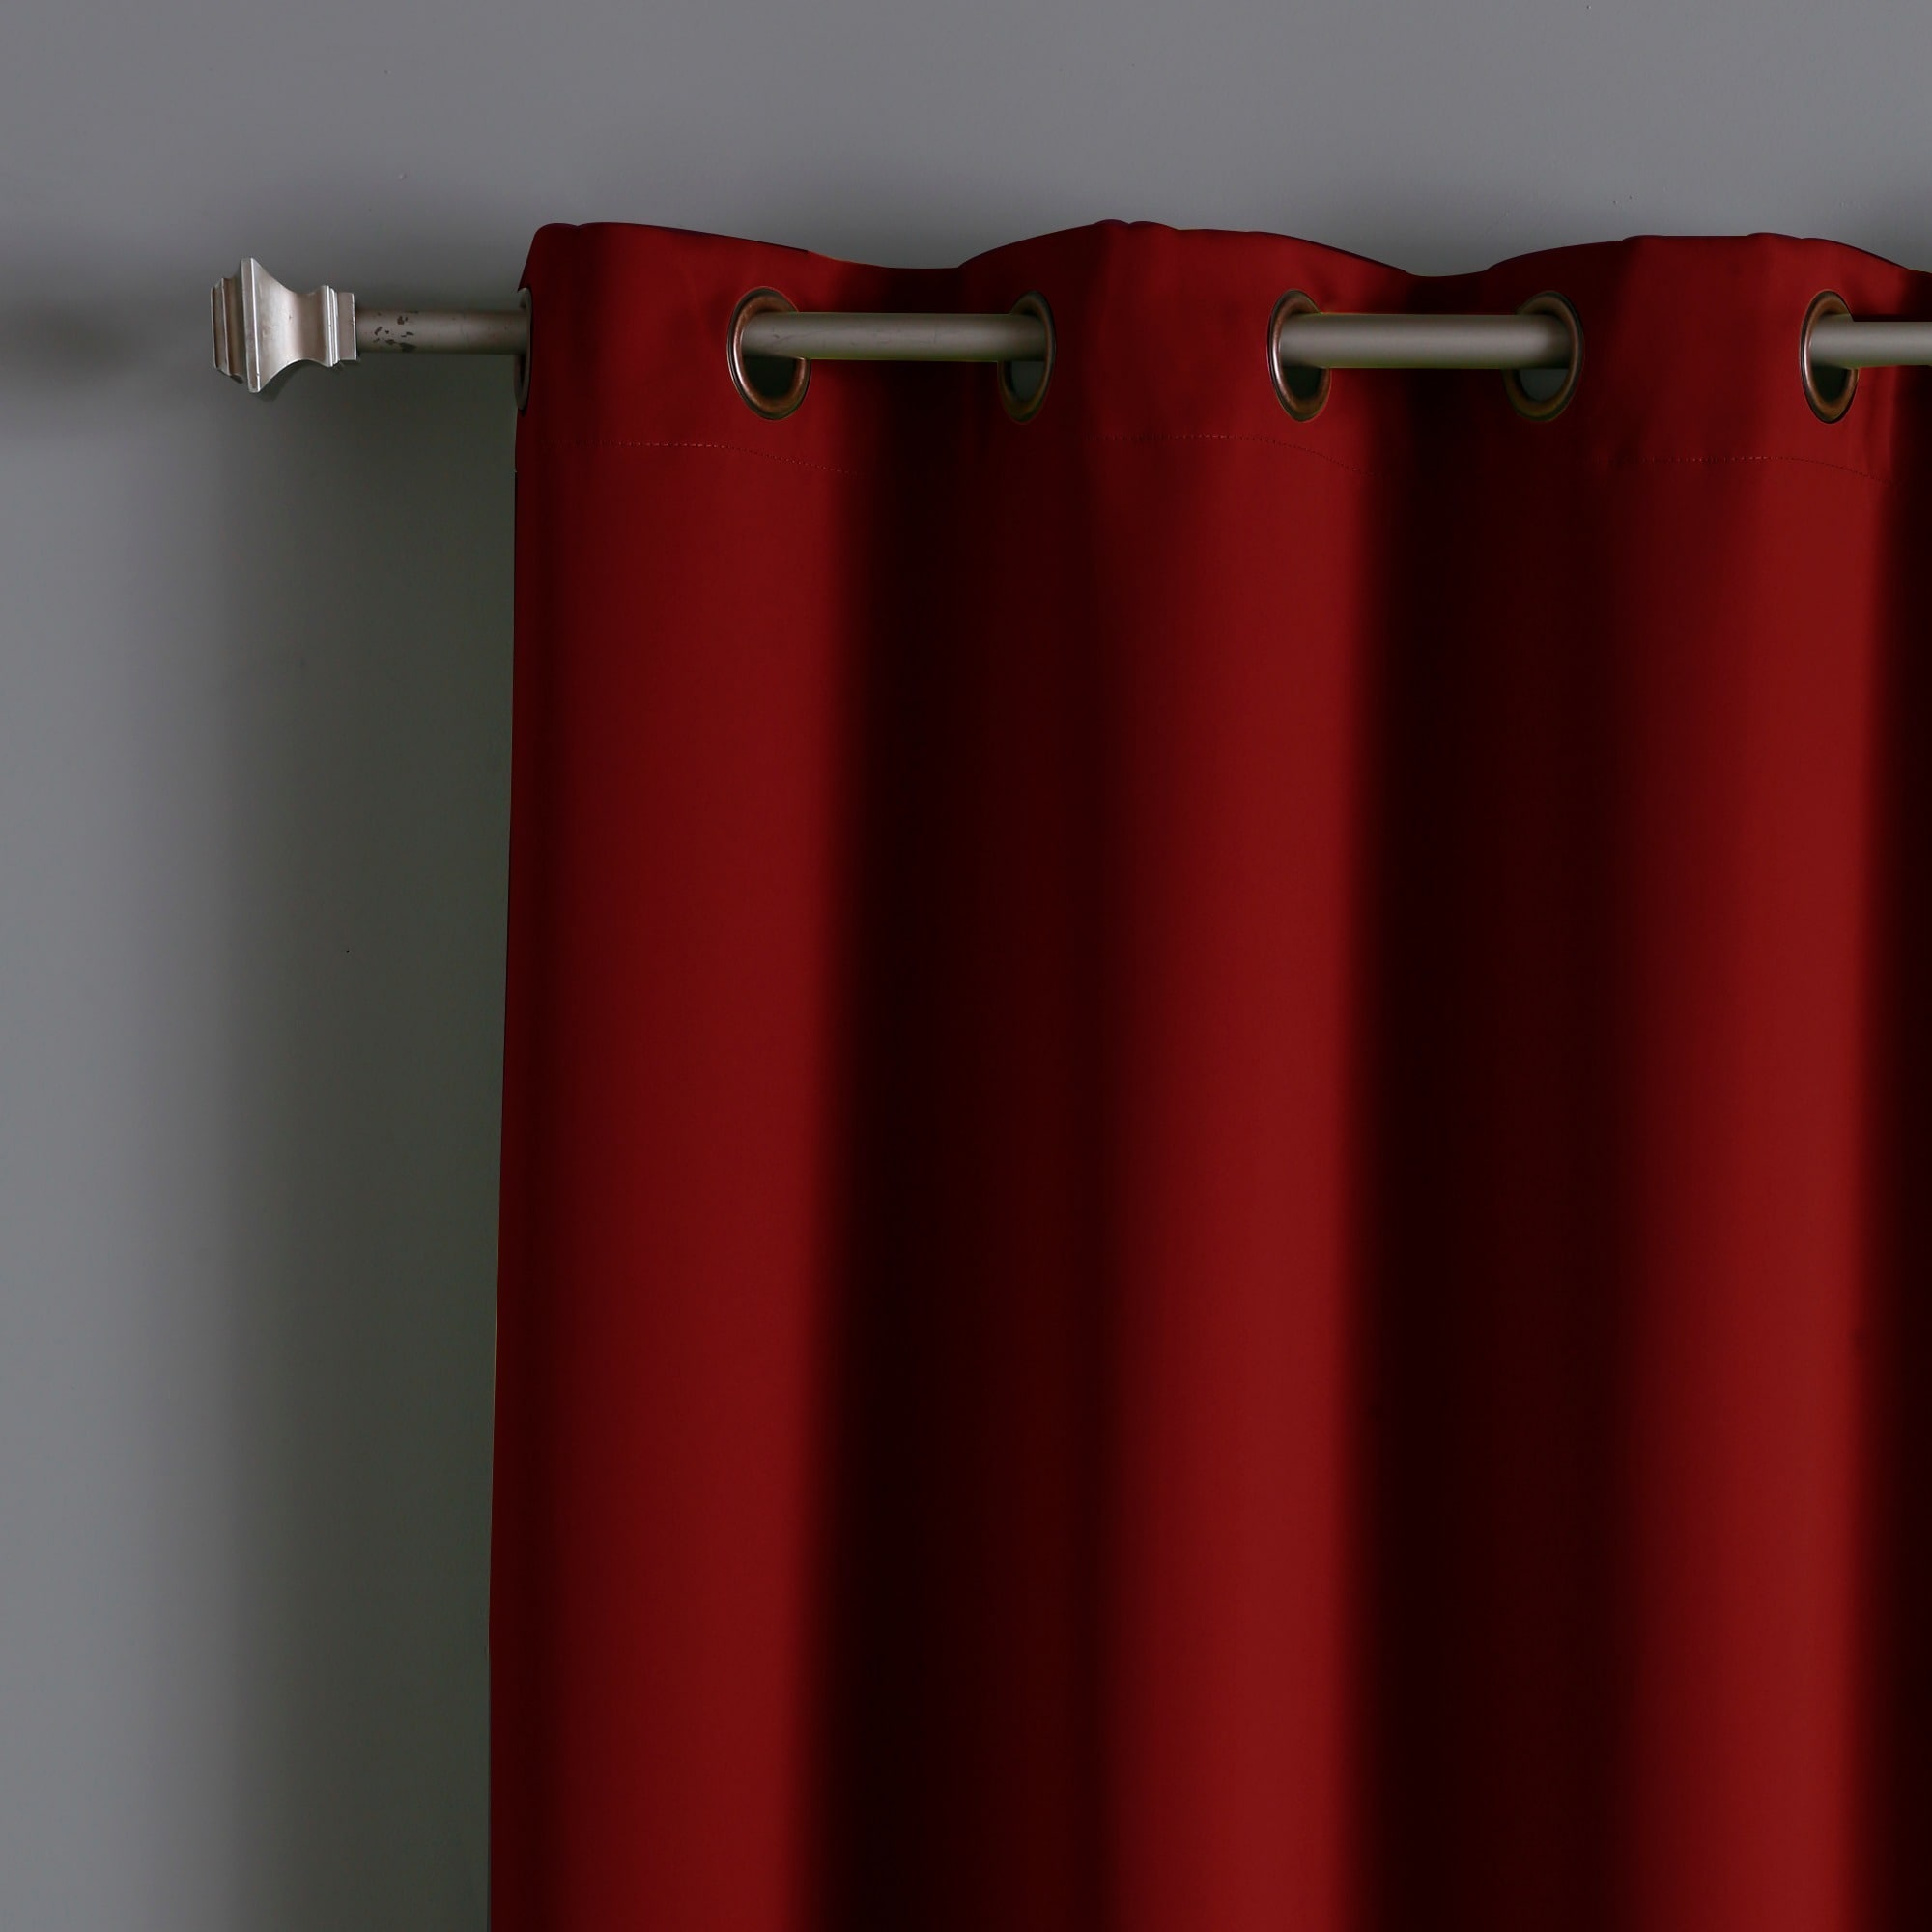 shop aurora home extra wide thermal 100 x 84 inch blackout curtain panel 100 x 84 100 x 84 on sale overstock 5793848 aurora home extra wide thermal 100 x 84 inch blackout curtain panel 100 x 84 100 x 84